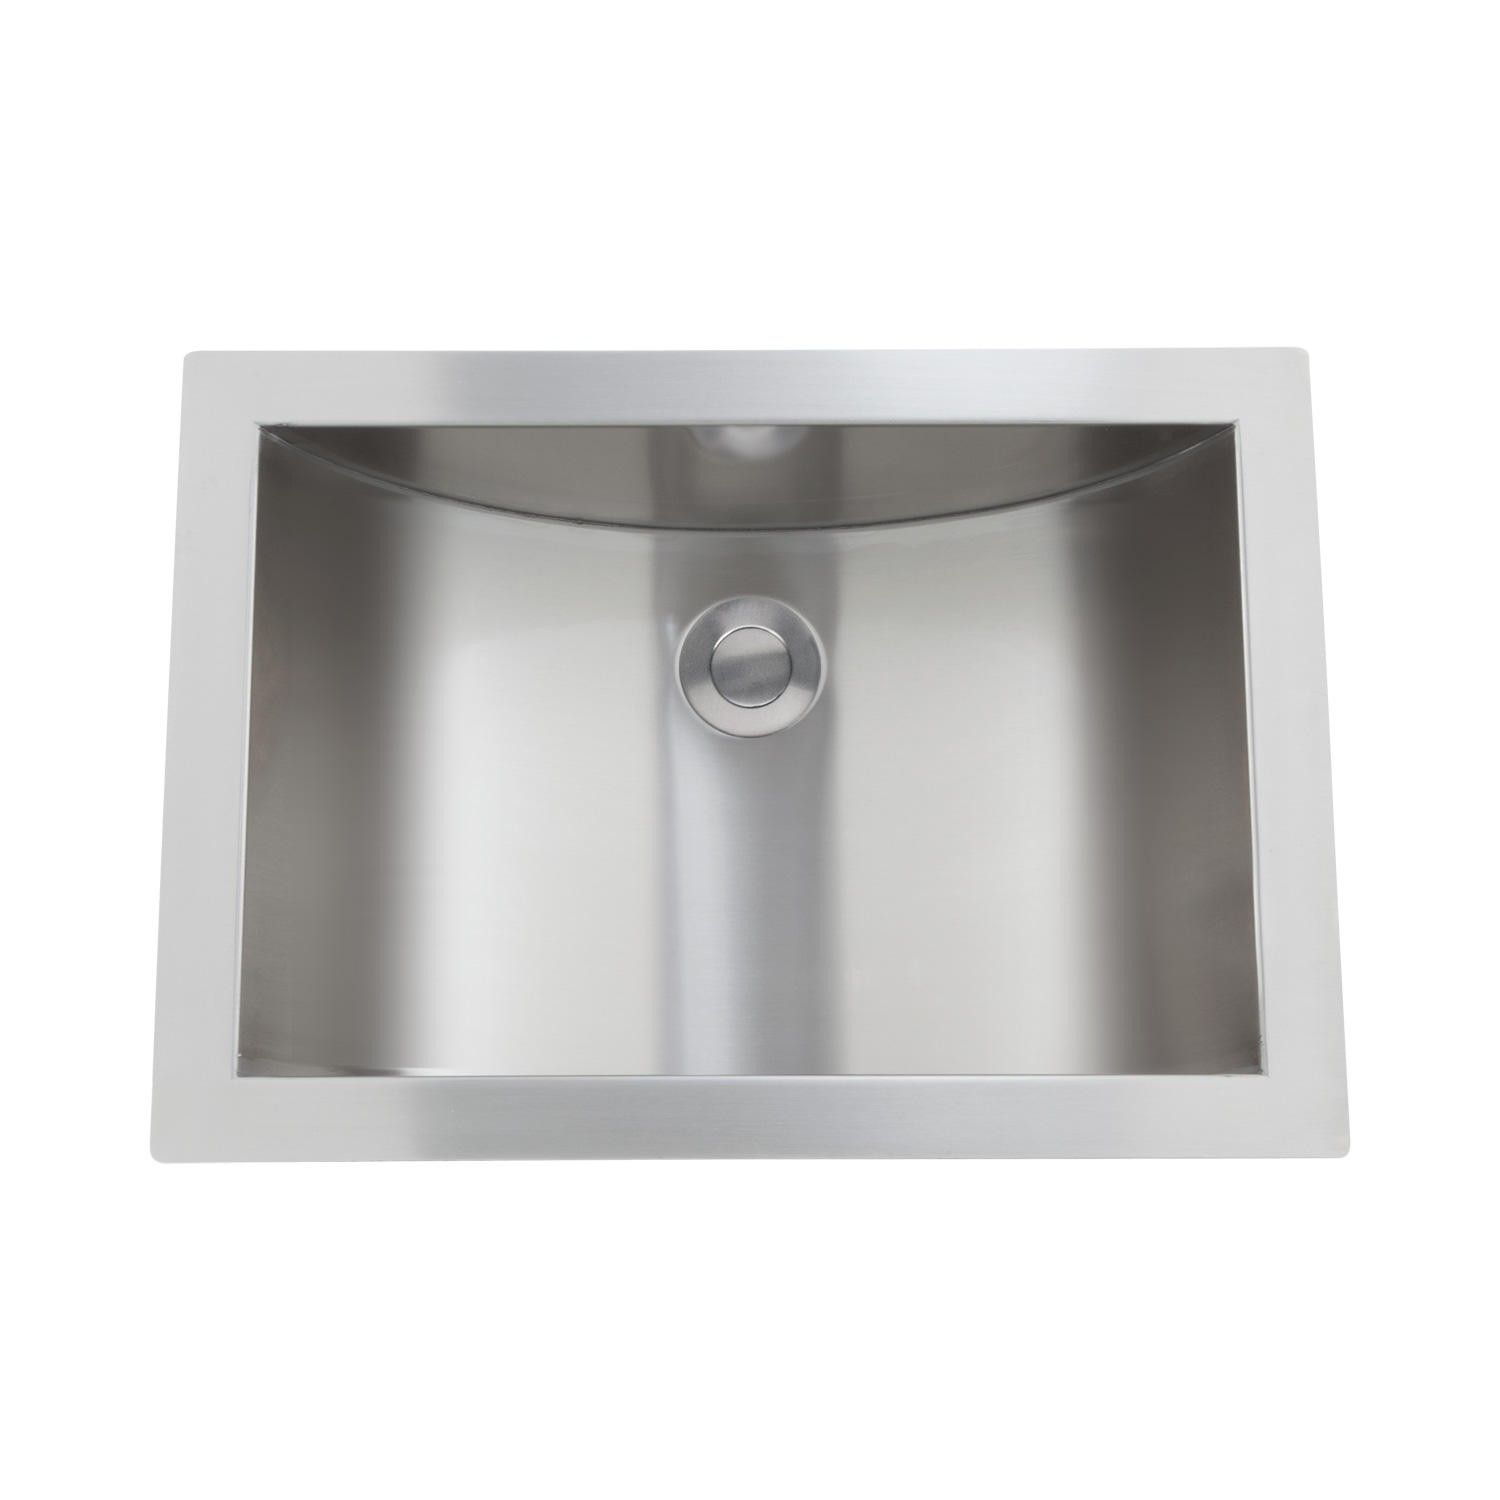 21 Optimum Stainless Steel Curved Undermount Sink Sinks Bathroom